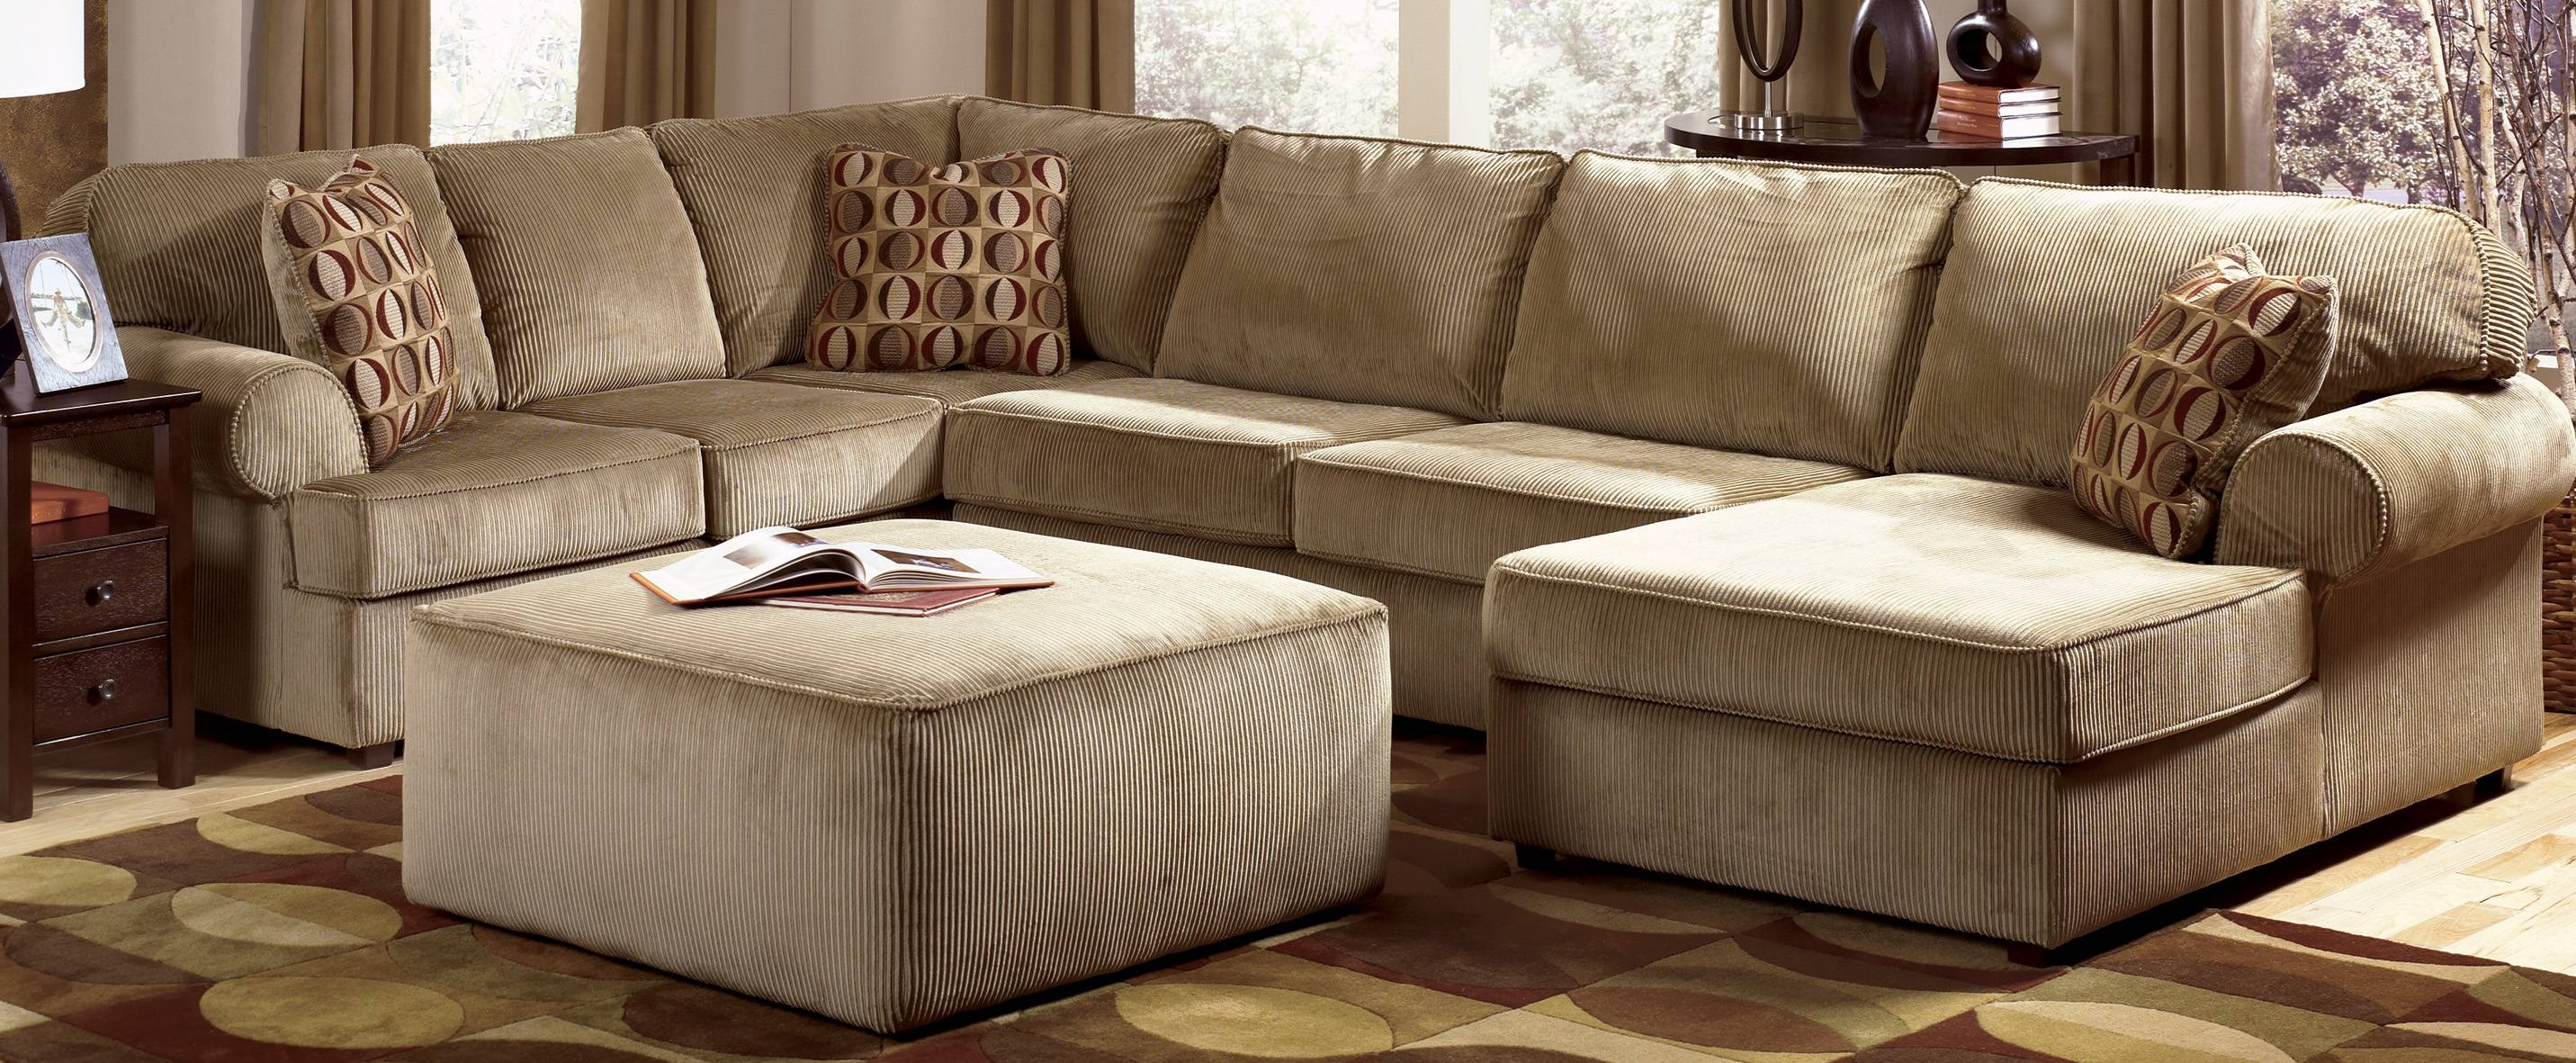 Furniture Home : Lovely Small U Shaped Sectional Sofa In Small intended for Elegant Sectional Sofas (Image 16 of 30)